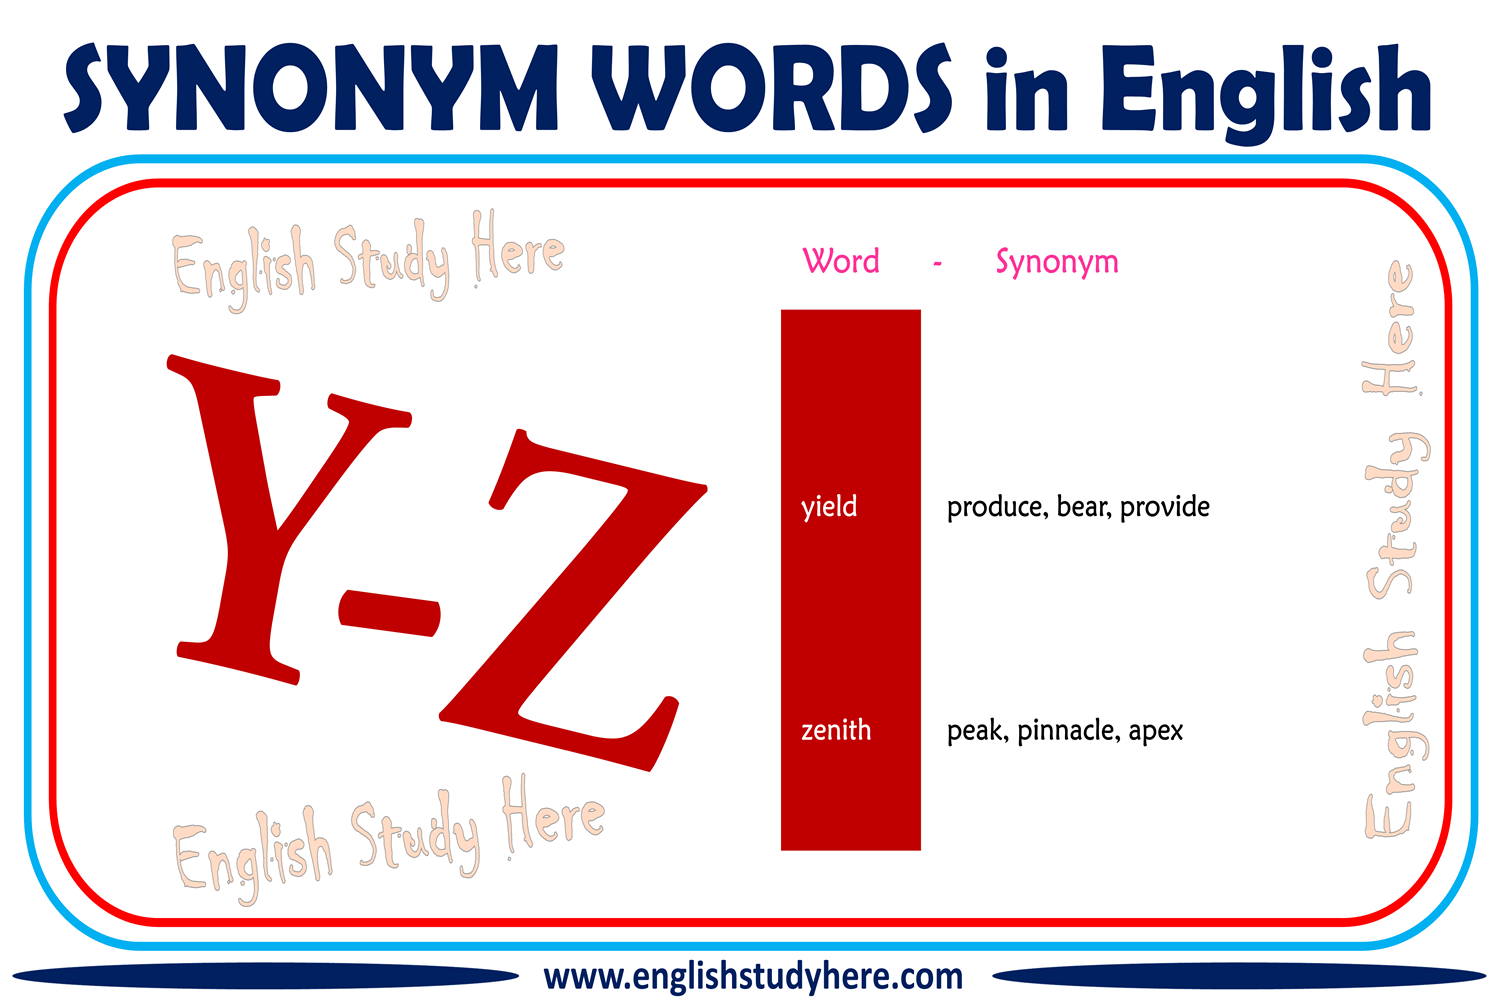 Synonym Words With Y-Z in English - English Study Here